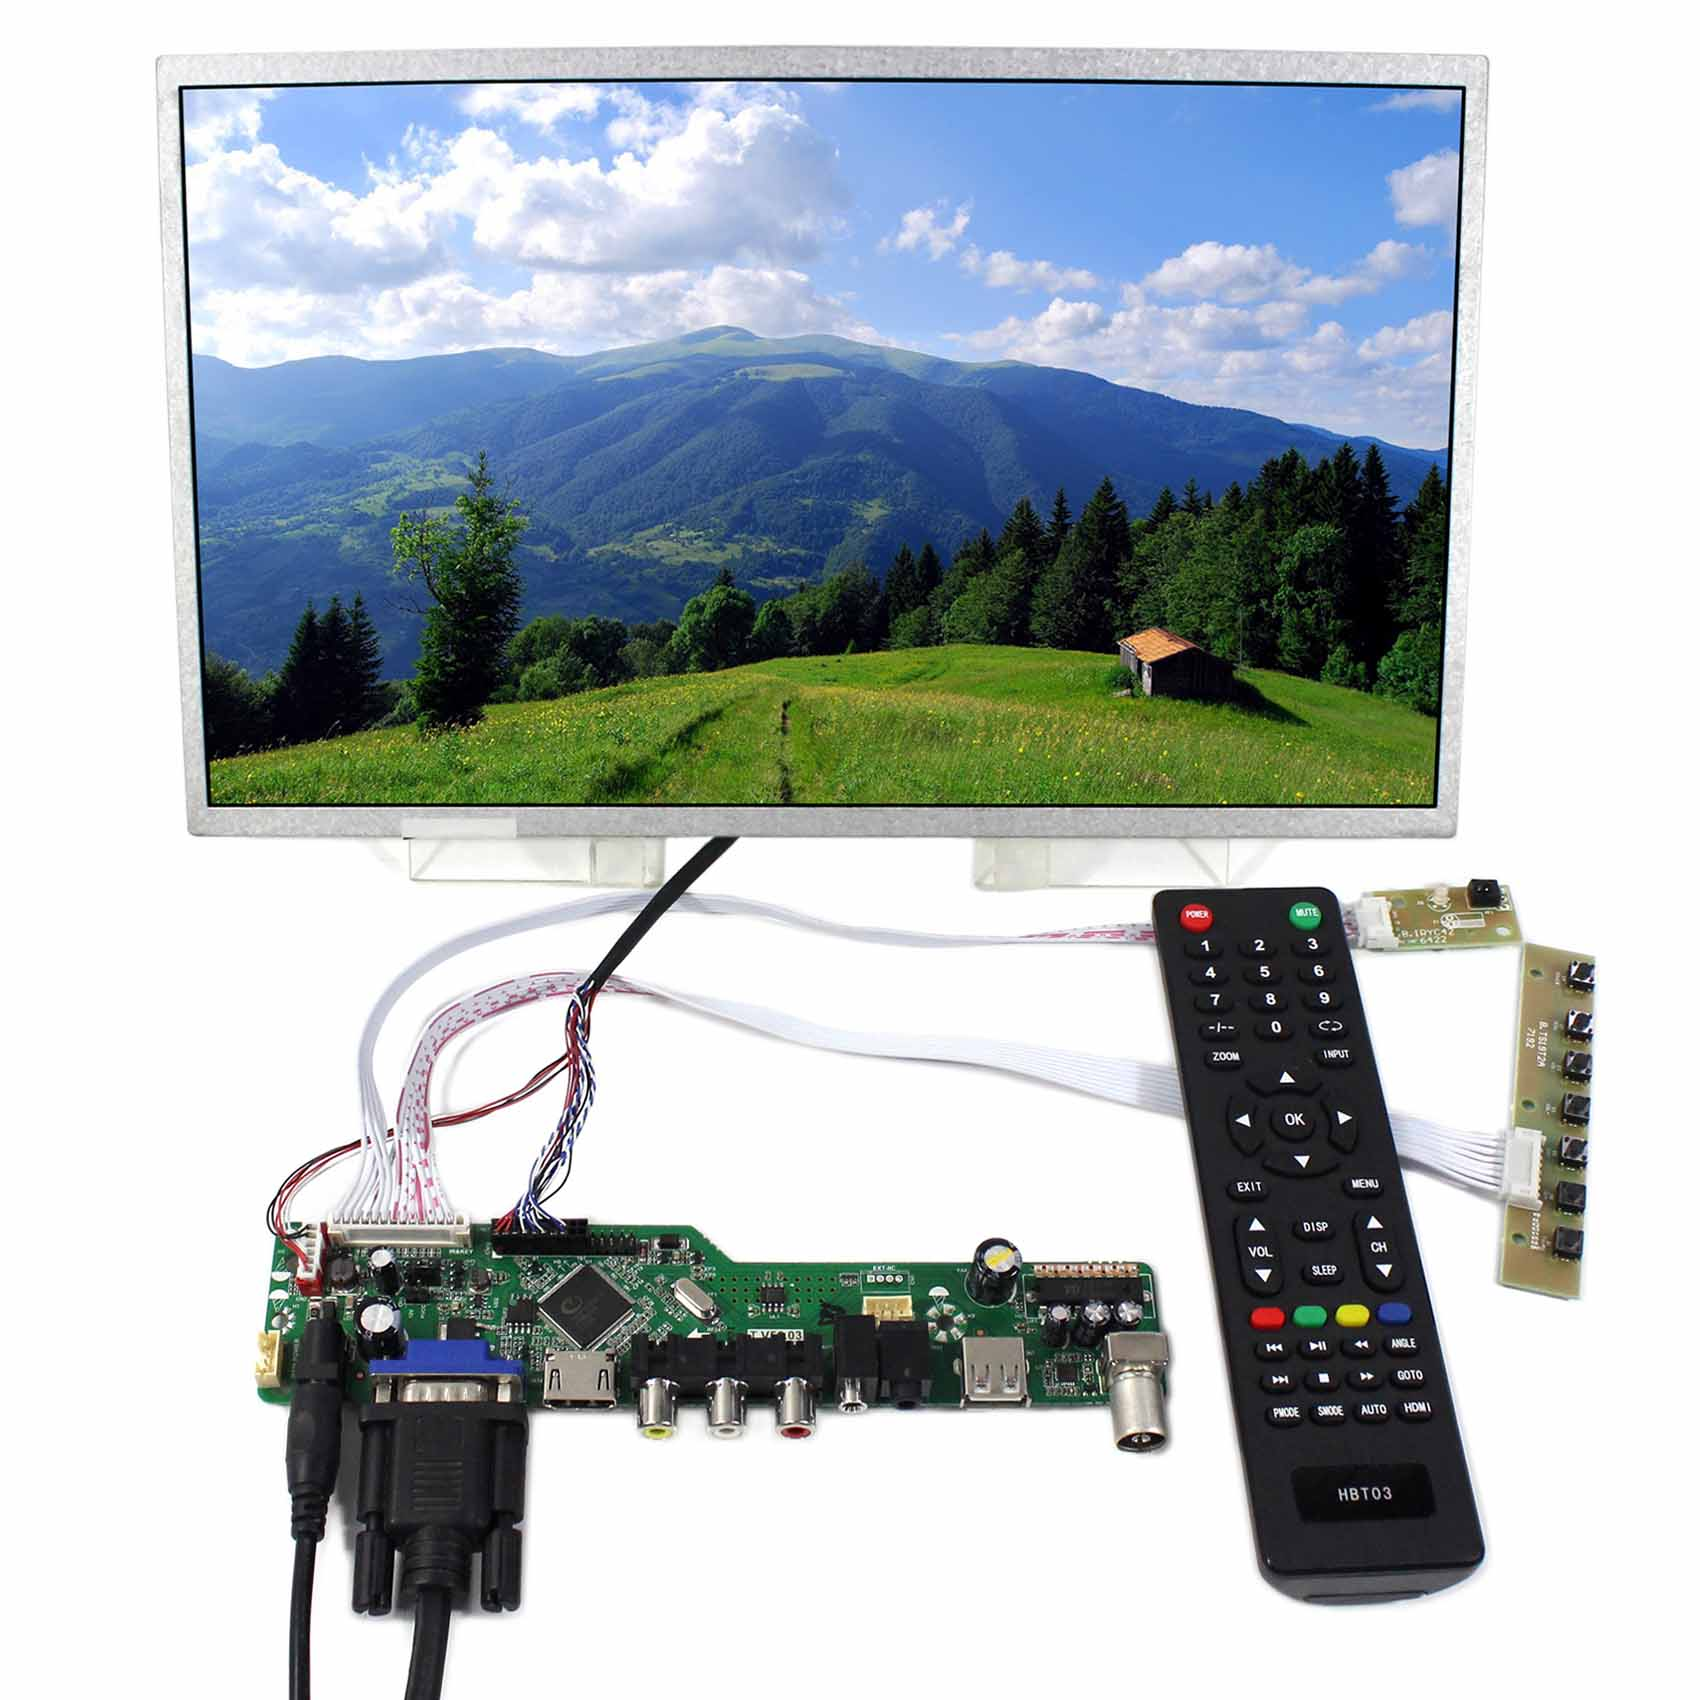 TV HDMI VGA AV USB AUDIO LCD Controller Board 13.3inch N133B6 1366x768 LCD Screen t v56 03 vga hdmi av audio usb tv lcd controller board for b154pw01 b154pw02 1440x900 ccfl lvds lcd ad board raspberry pi